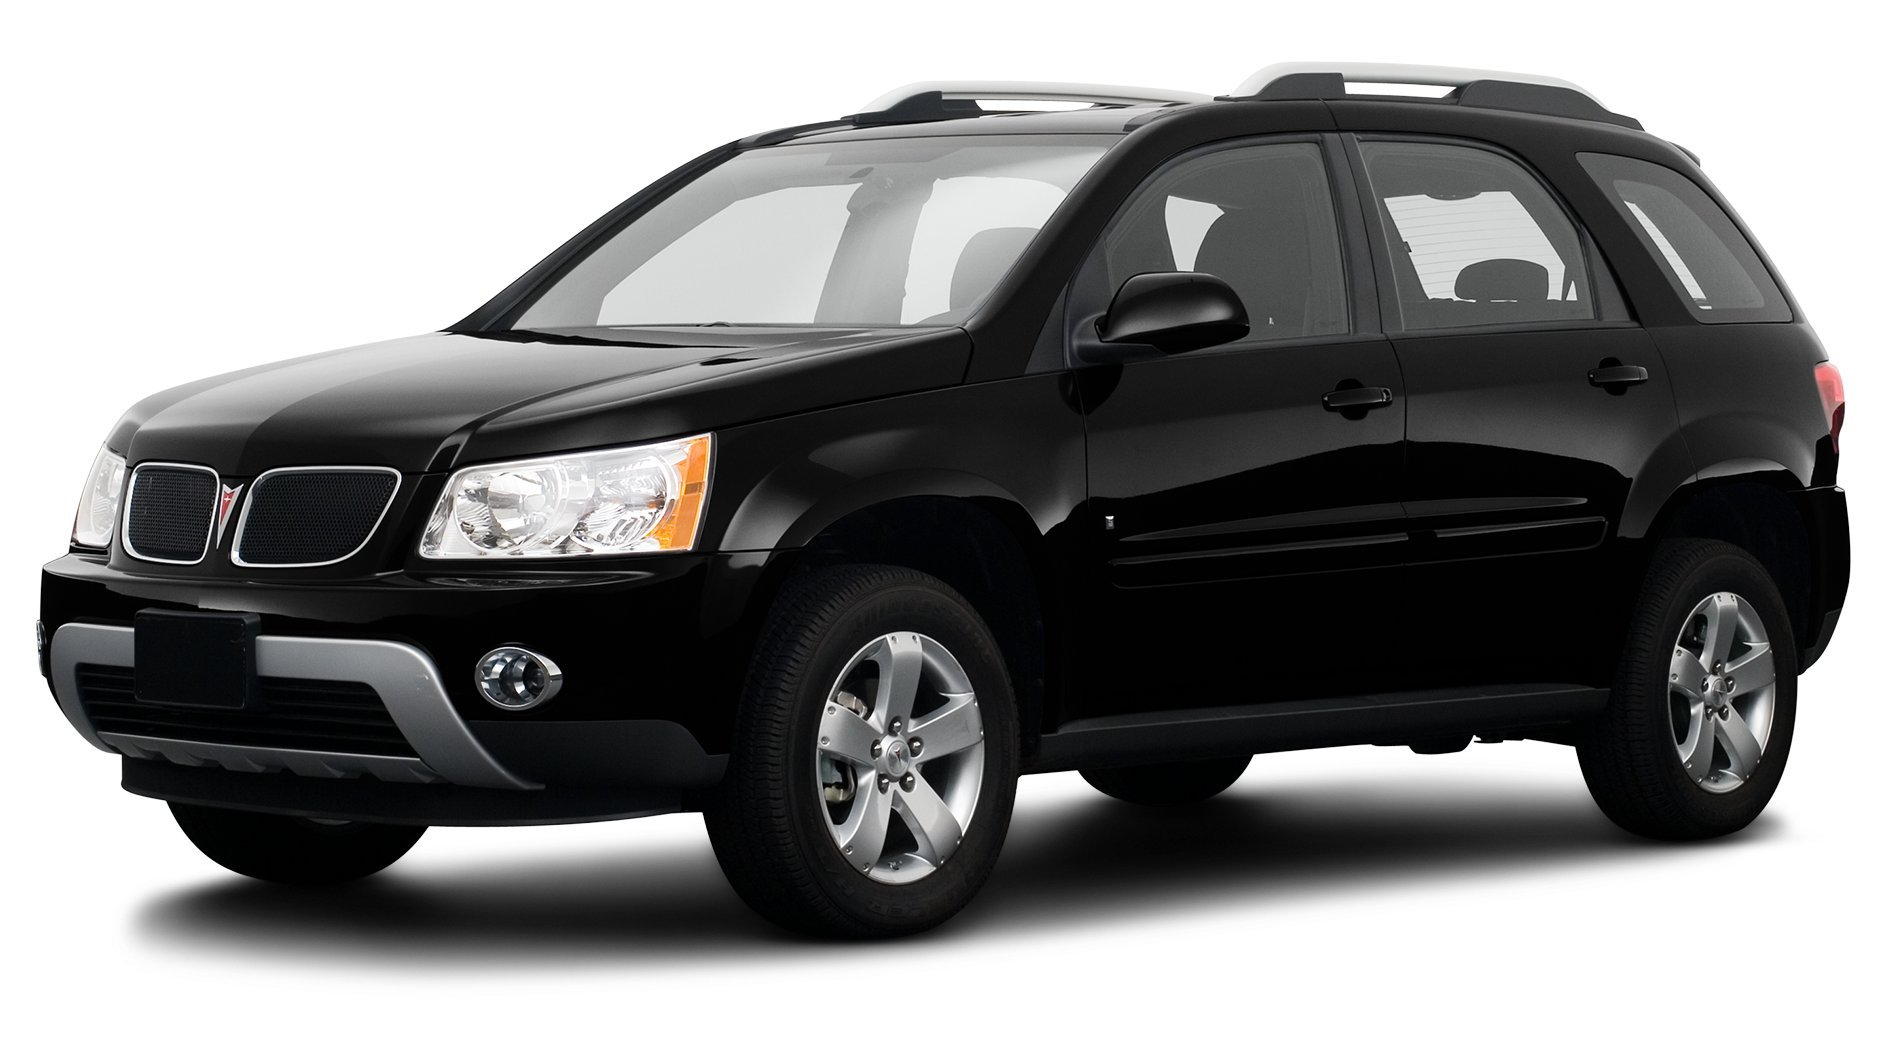 2008 Hyundai Santa Fe GLS, All Wheel Drive 4-Door Automatic Transmission,  2008 Pontiac Torrent, All Wheel Drive 4-Door ...